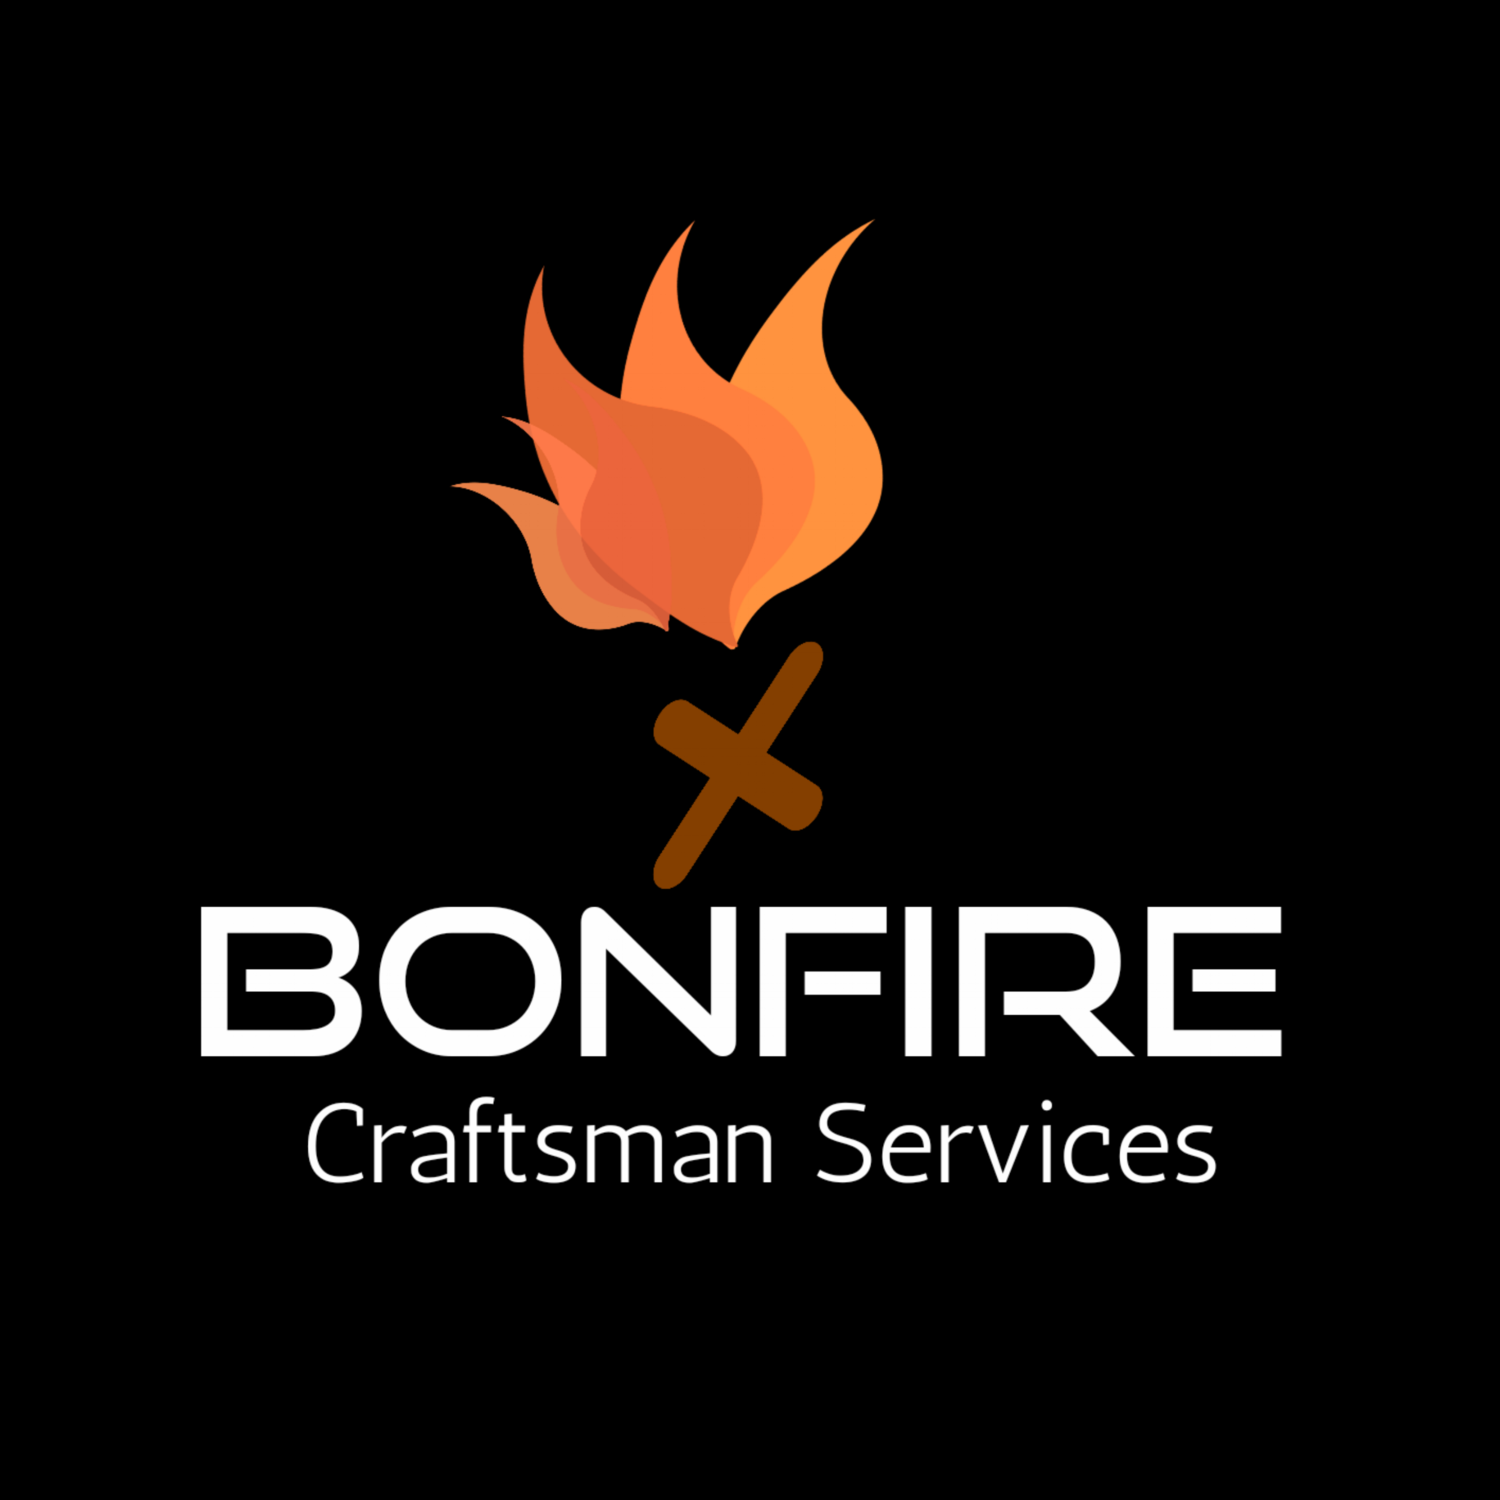 Bonfire Craftsman Services, LLC